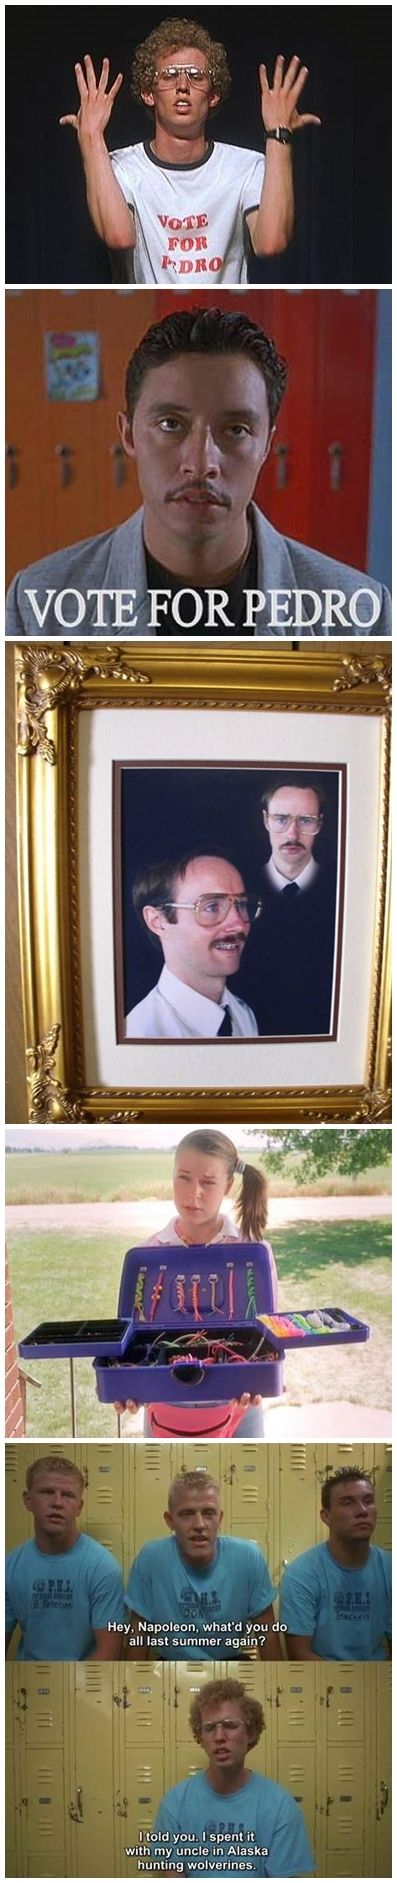 For All the Napoleon Dynamite Fans